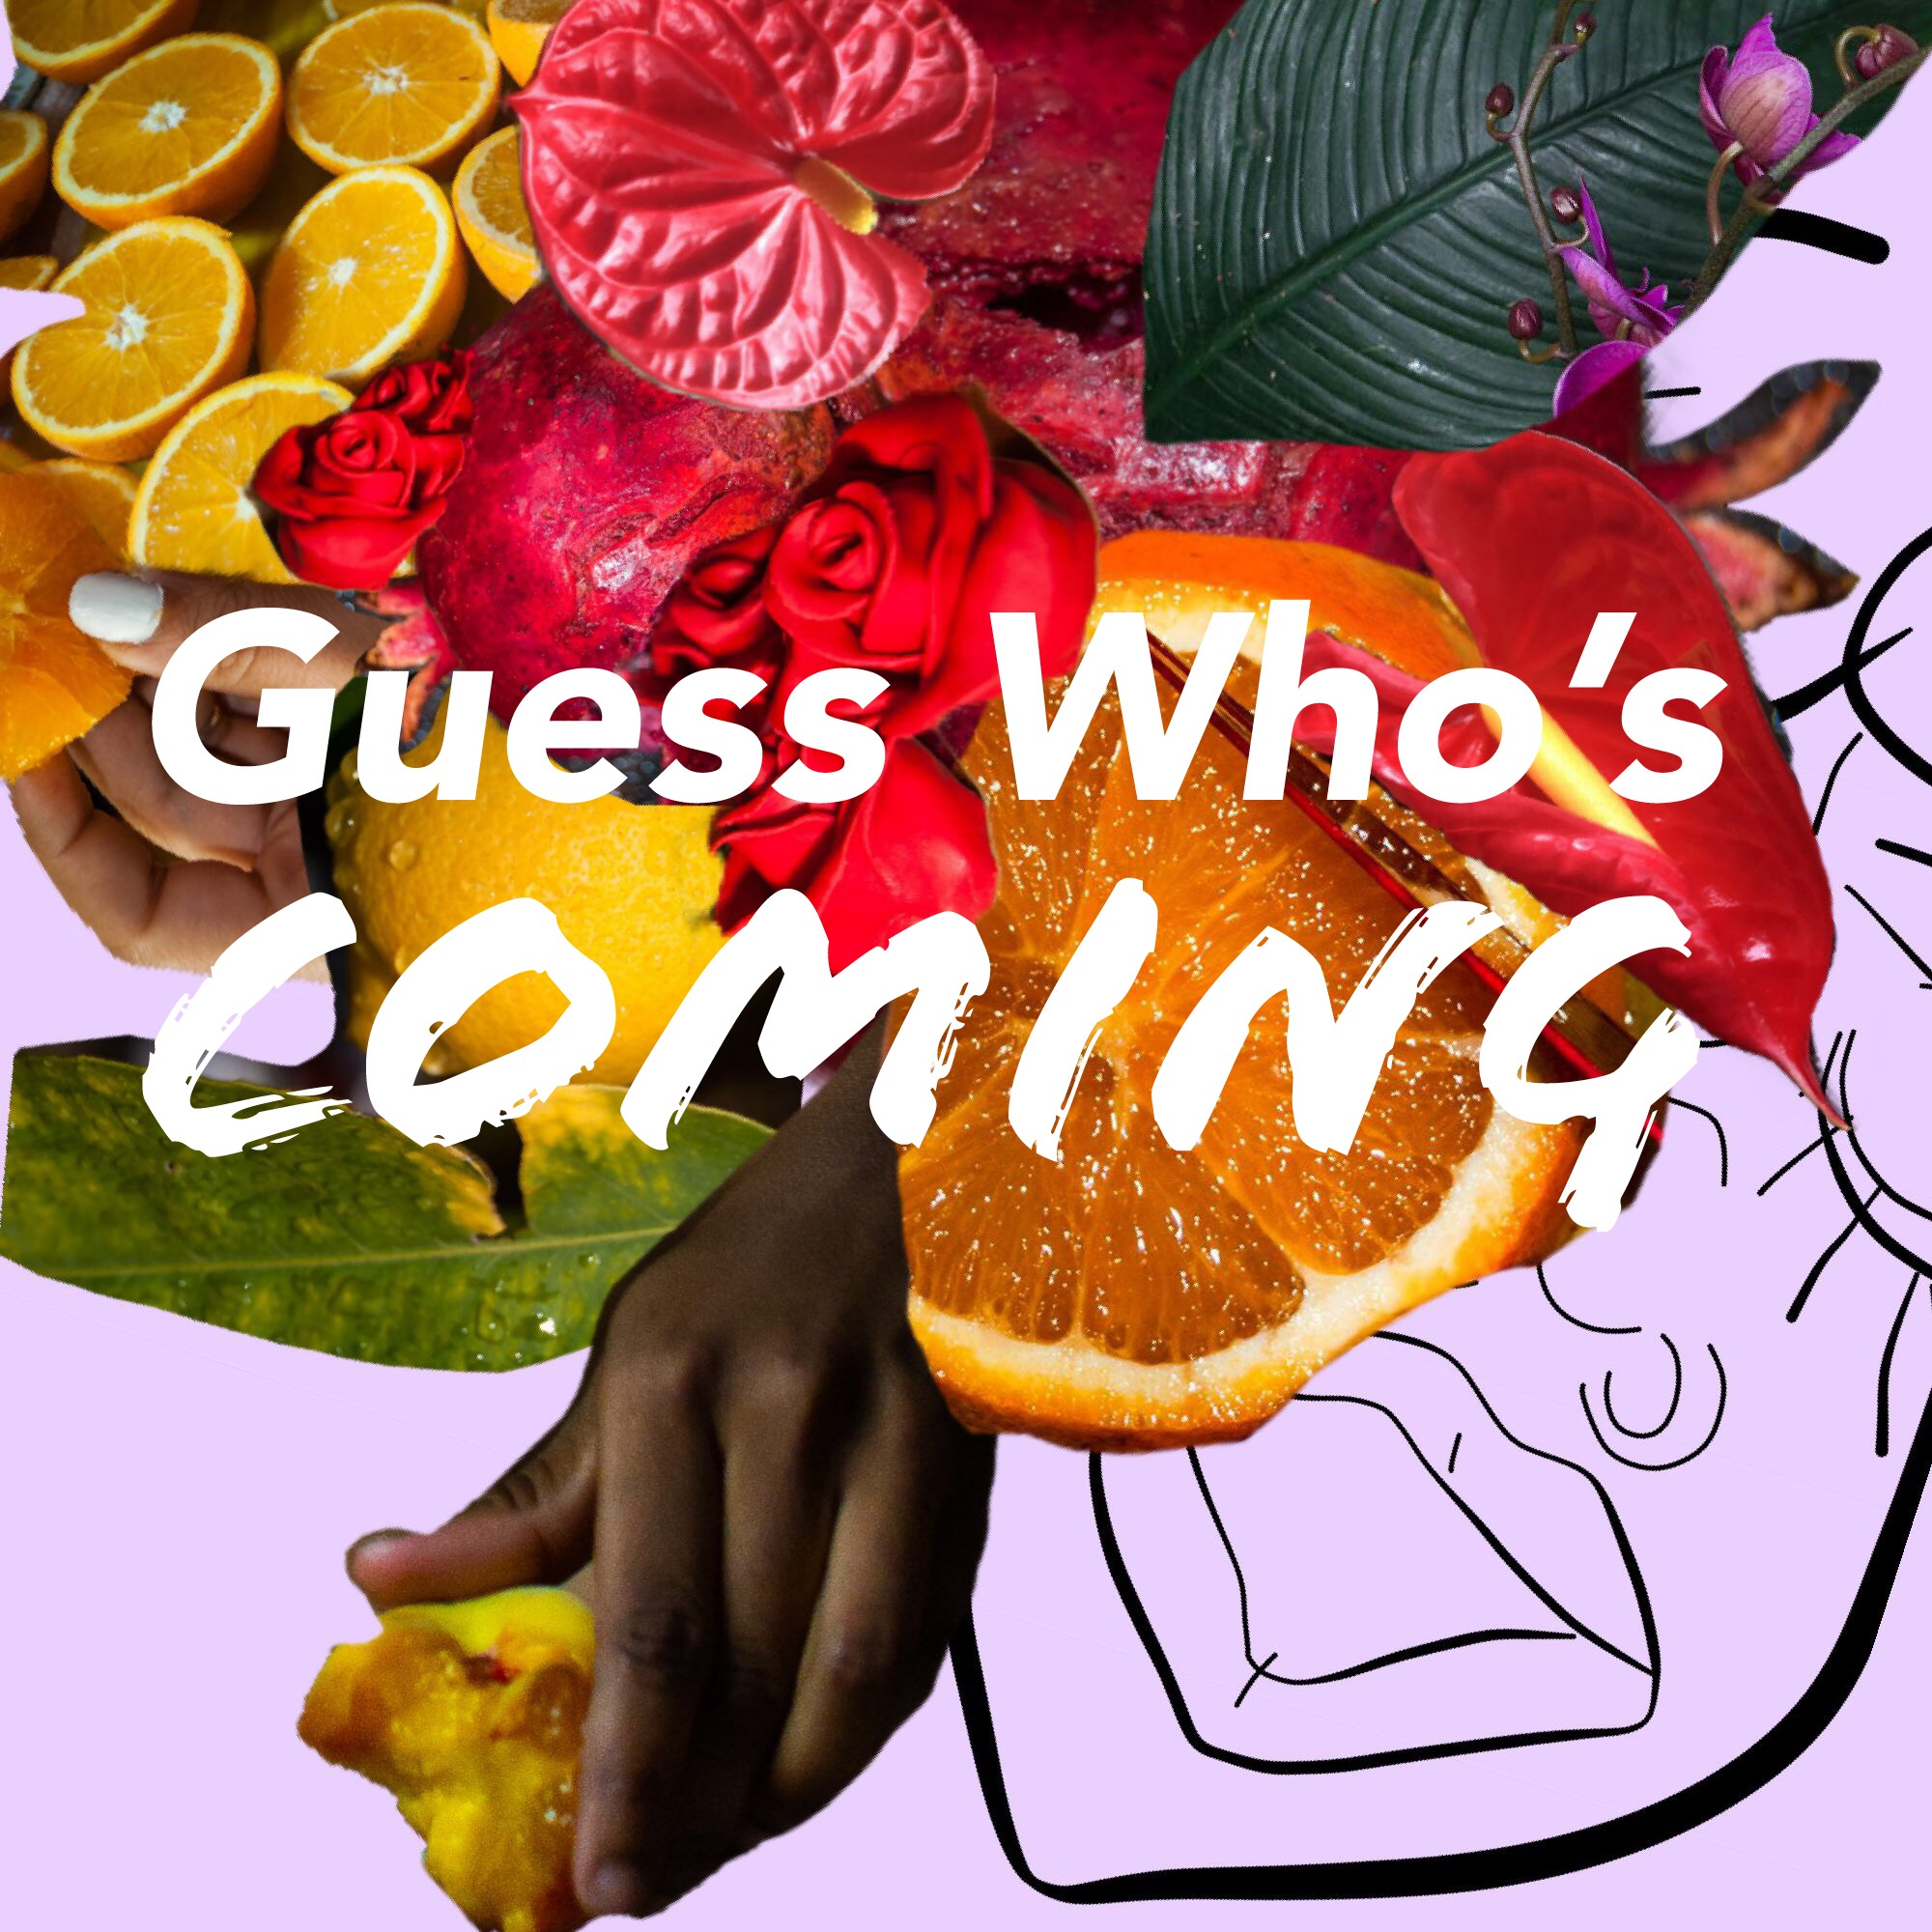 "- Guess Who's Coming is a QPOC-run podcast where I interview folx and talk about all things s*x, dating, and relationships while enjoying a good meal with guests. The purpose of this show is to promote sexual health and wellness while also giving a voice to marginalized communities (women, nonbinary folx, persons of color, LGBTQIA+, etc.). Guess Who's Coming will simultaneously provide humor and education as we talk about those things you ""shouldn't talk about at the dinner table"".Also available on Spotify, Simplecast, and more soon!Artwork by Amal D. (@youcandoithabibi)"